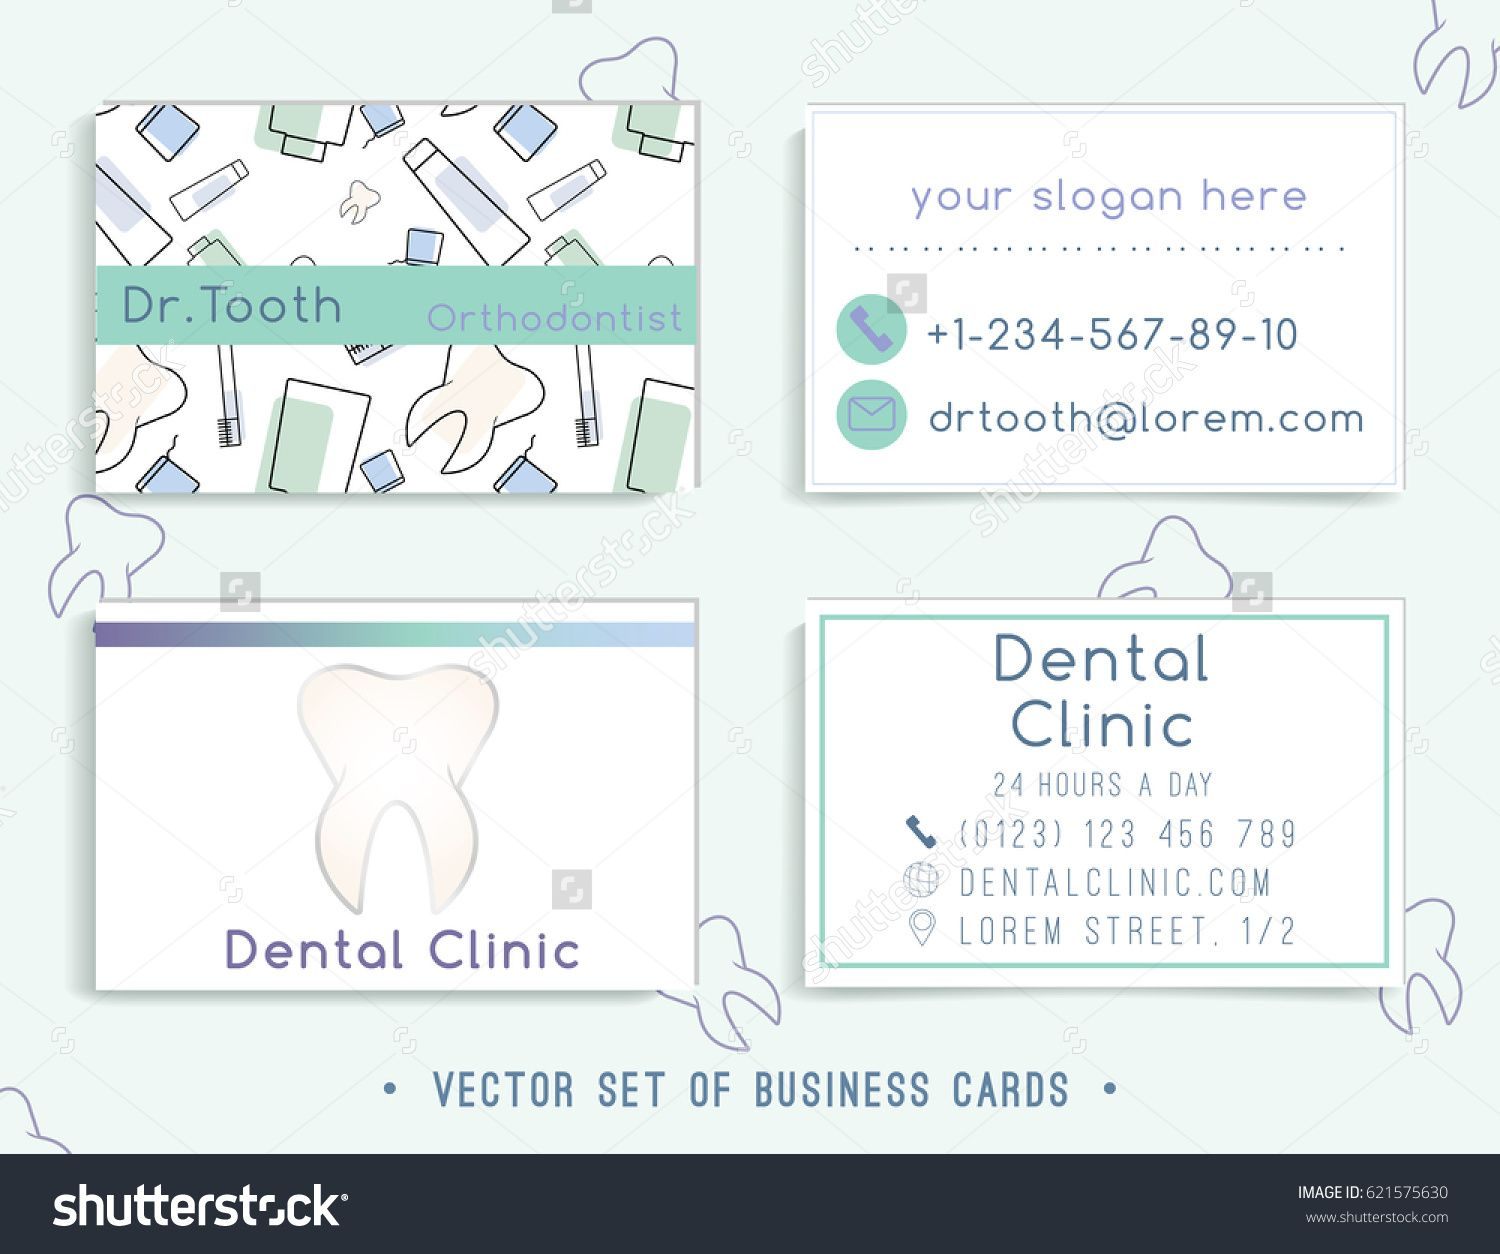 Business card template design for your dental clinic or